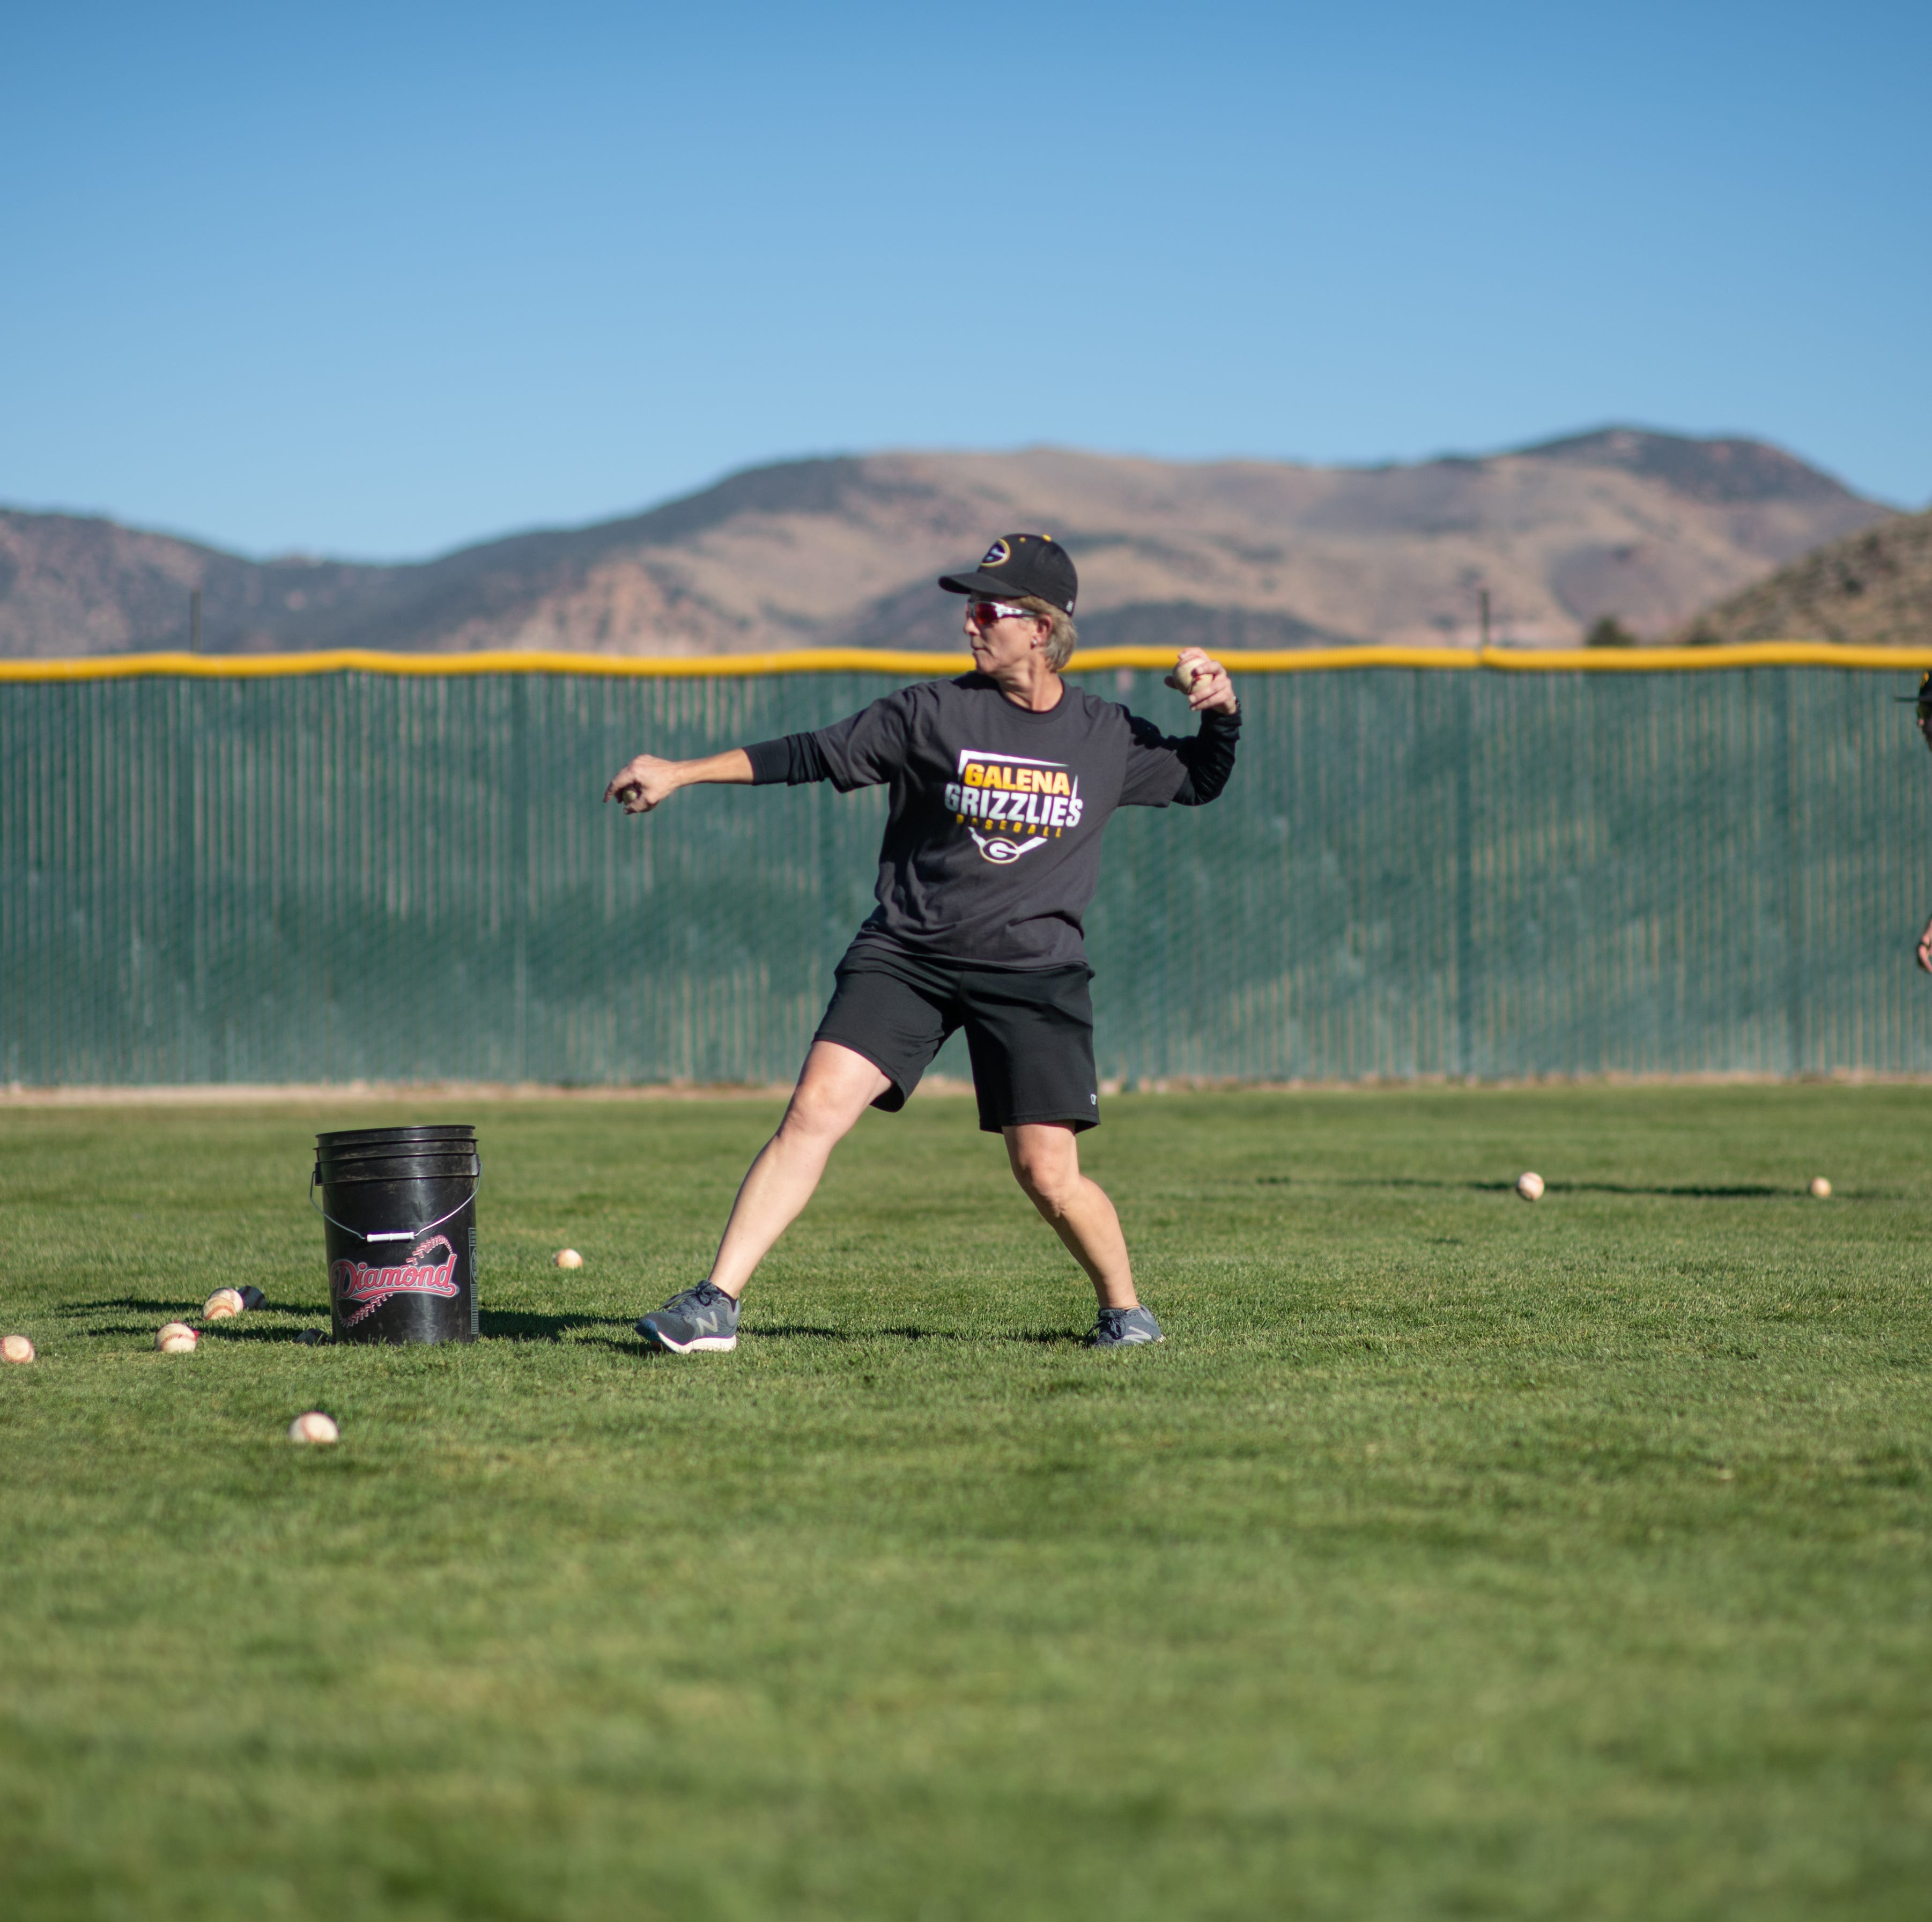 Concert violinist turns focus to coaching baseball